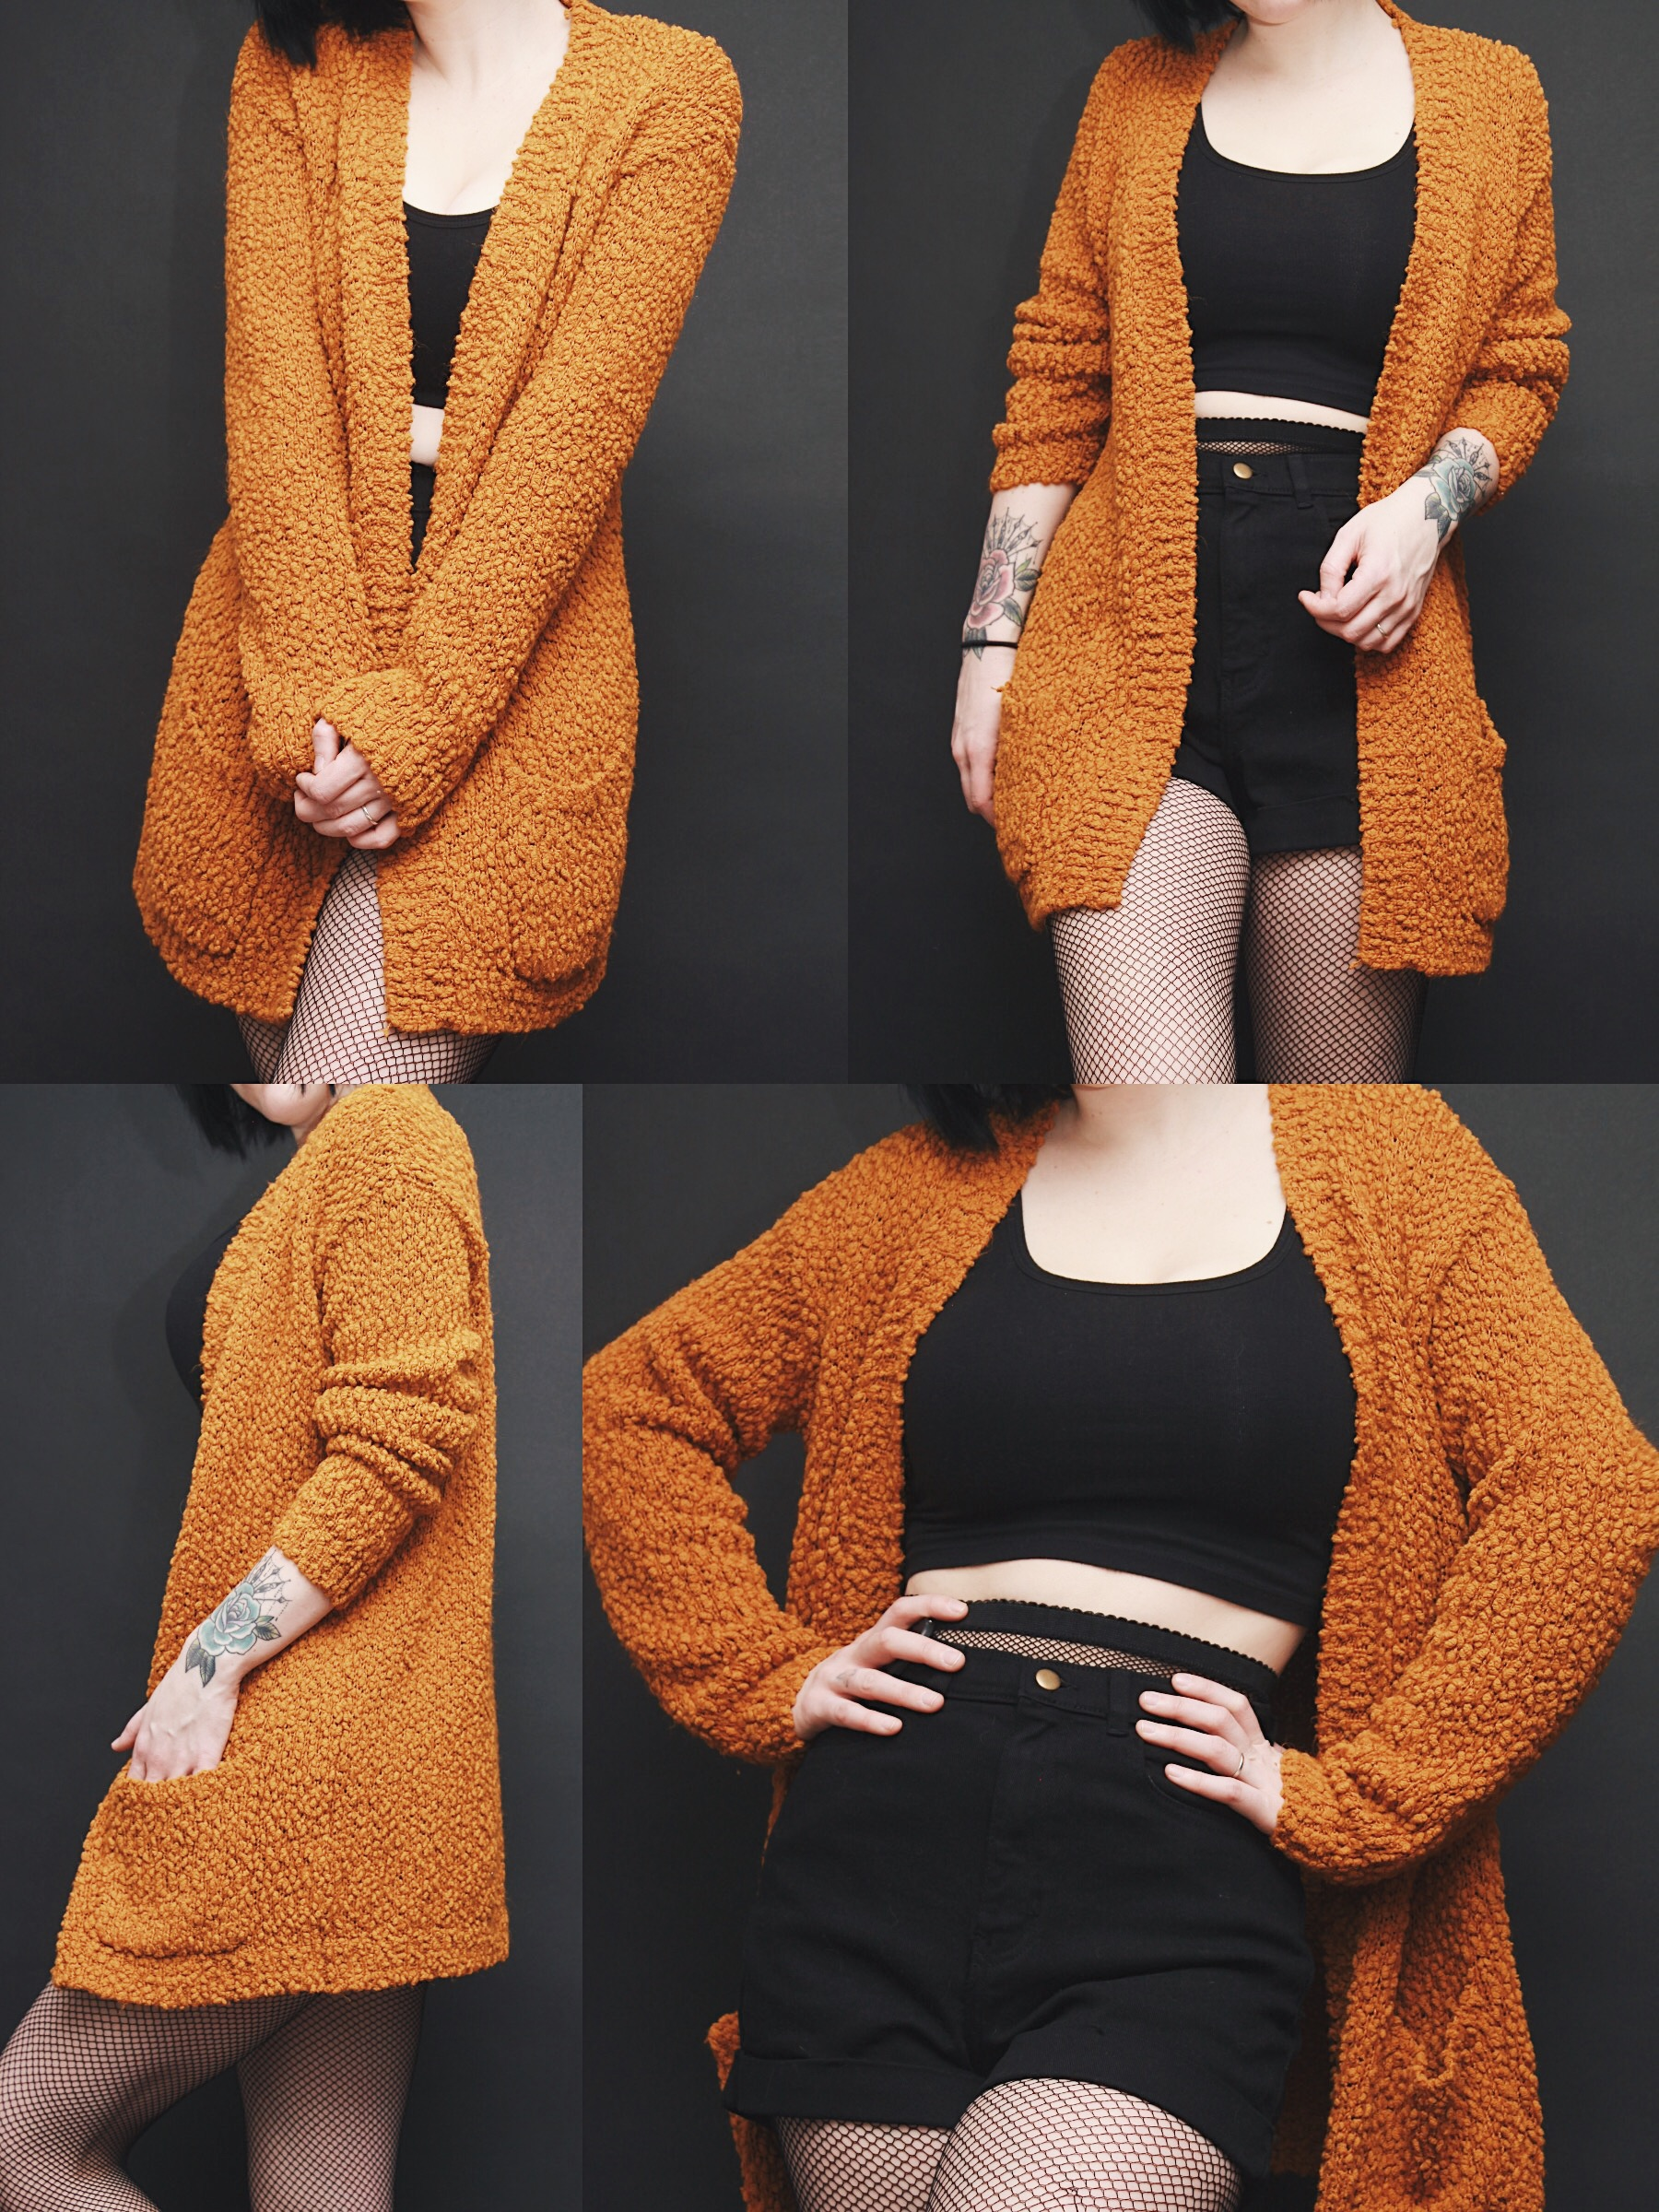 CLAIMED @foxbone.s - Vintage Mustard Yellow Nubby Chunky Knit Long ...